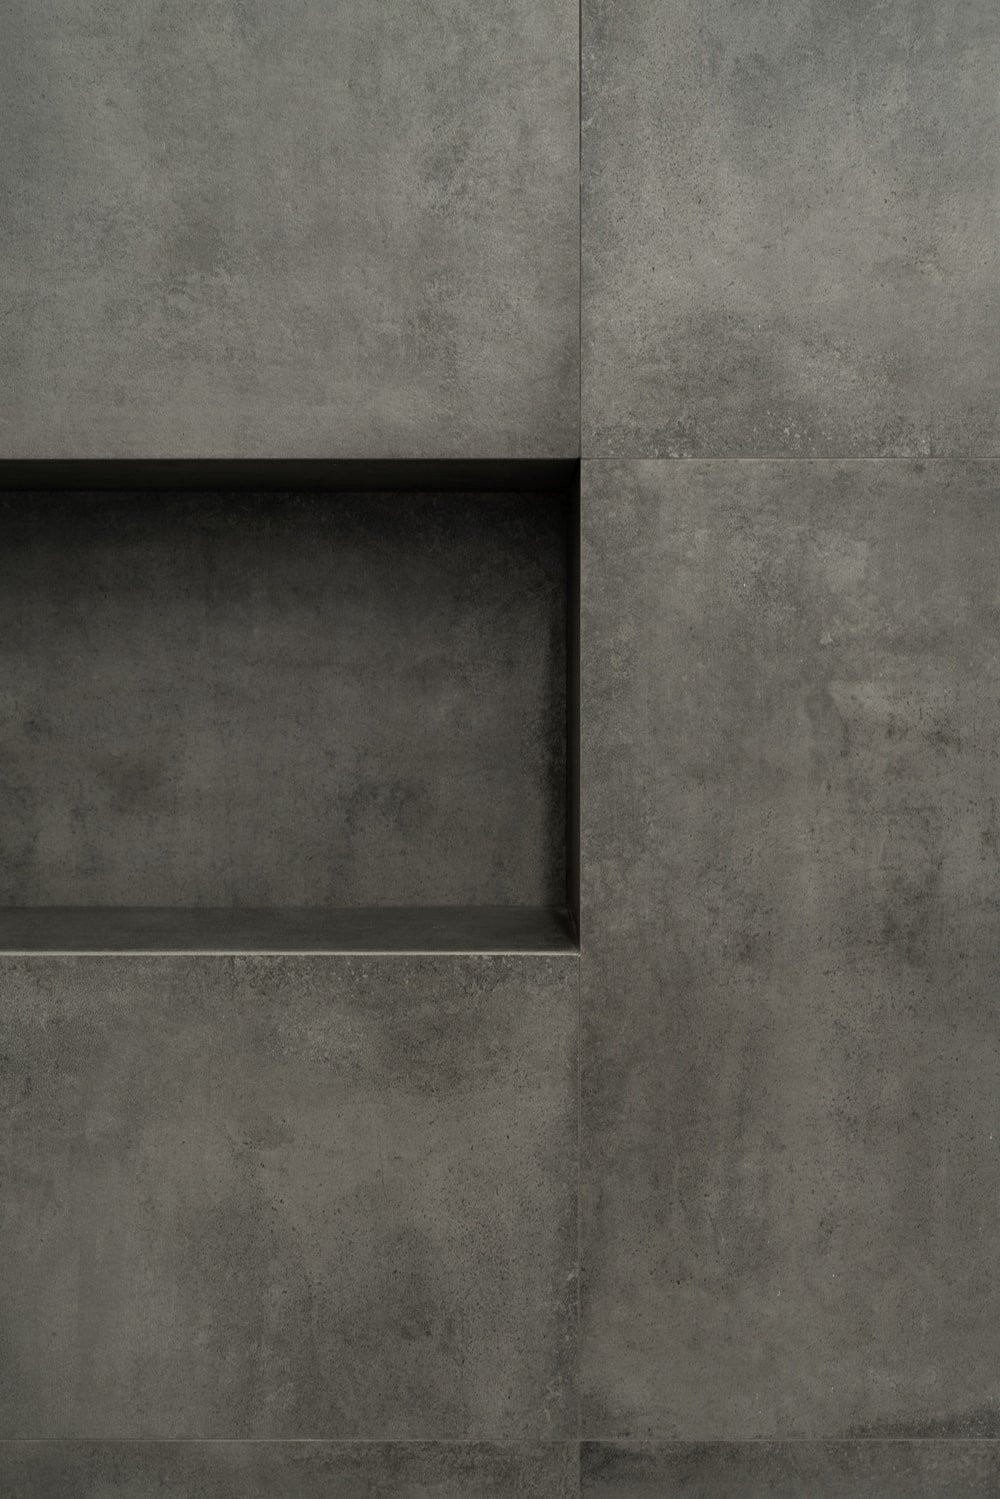 This is a close look at the dark gray wall of the shower area with an alcove for bath products.